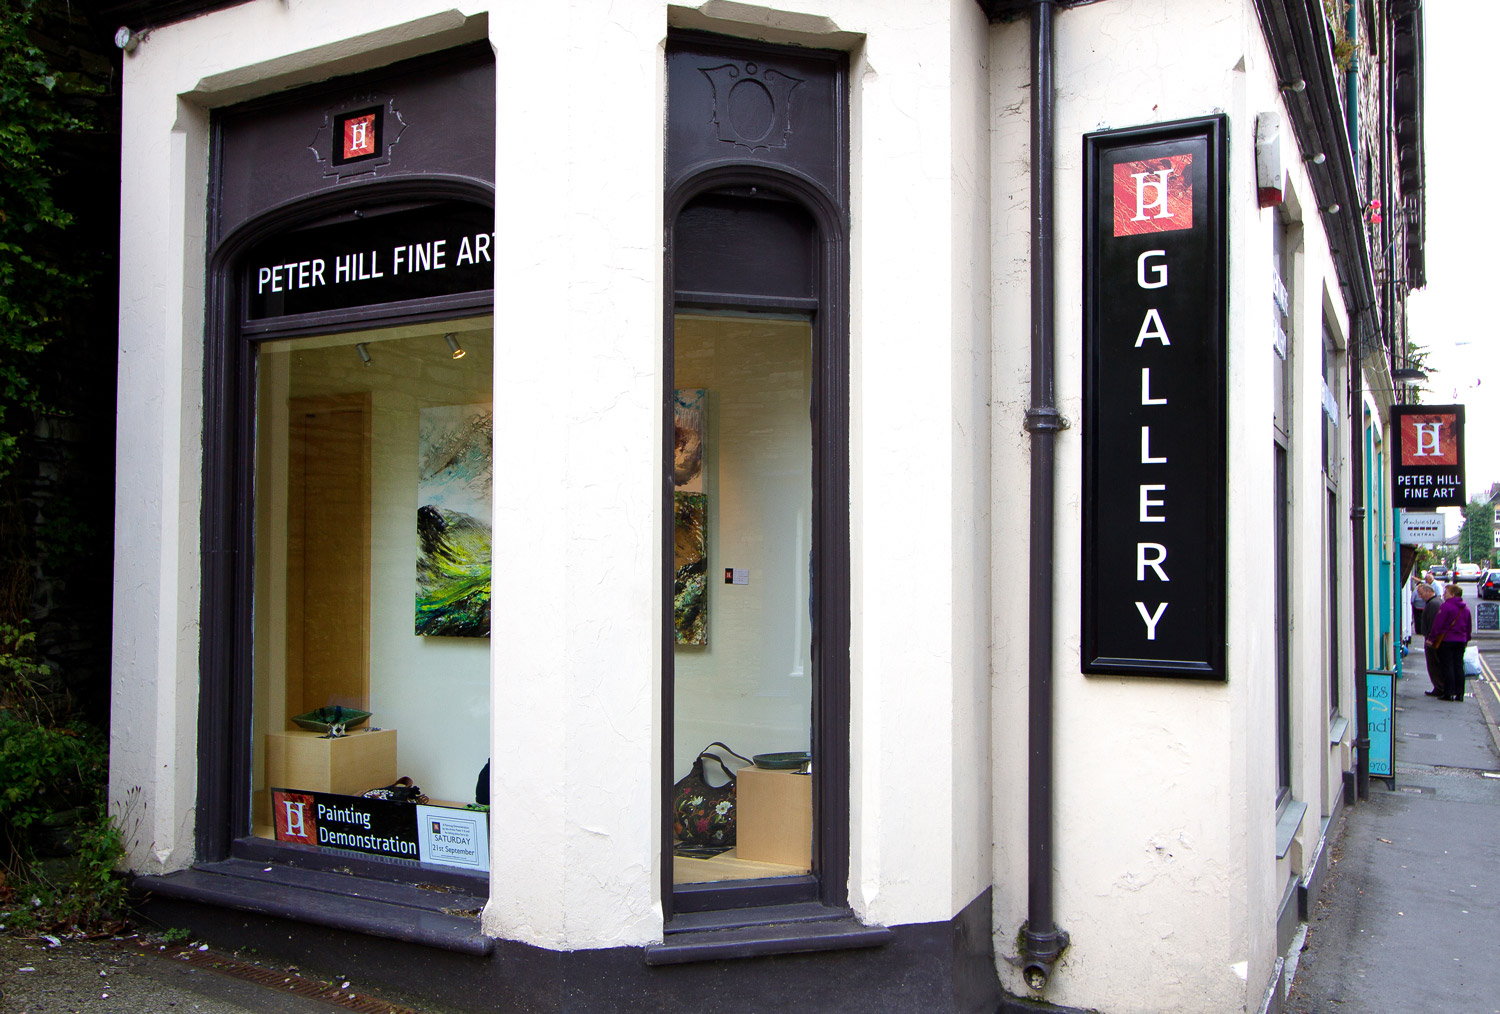 PHFA Kentemere Gallery Ambleside